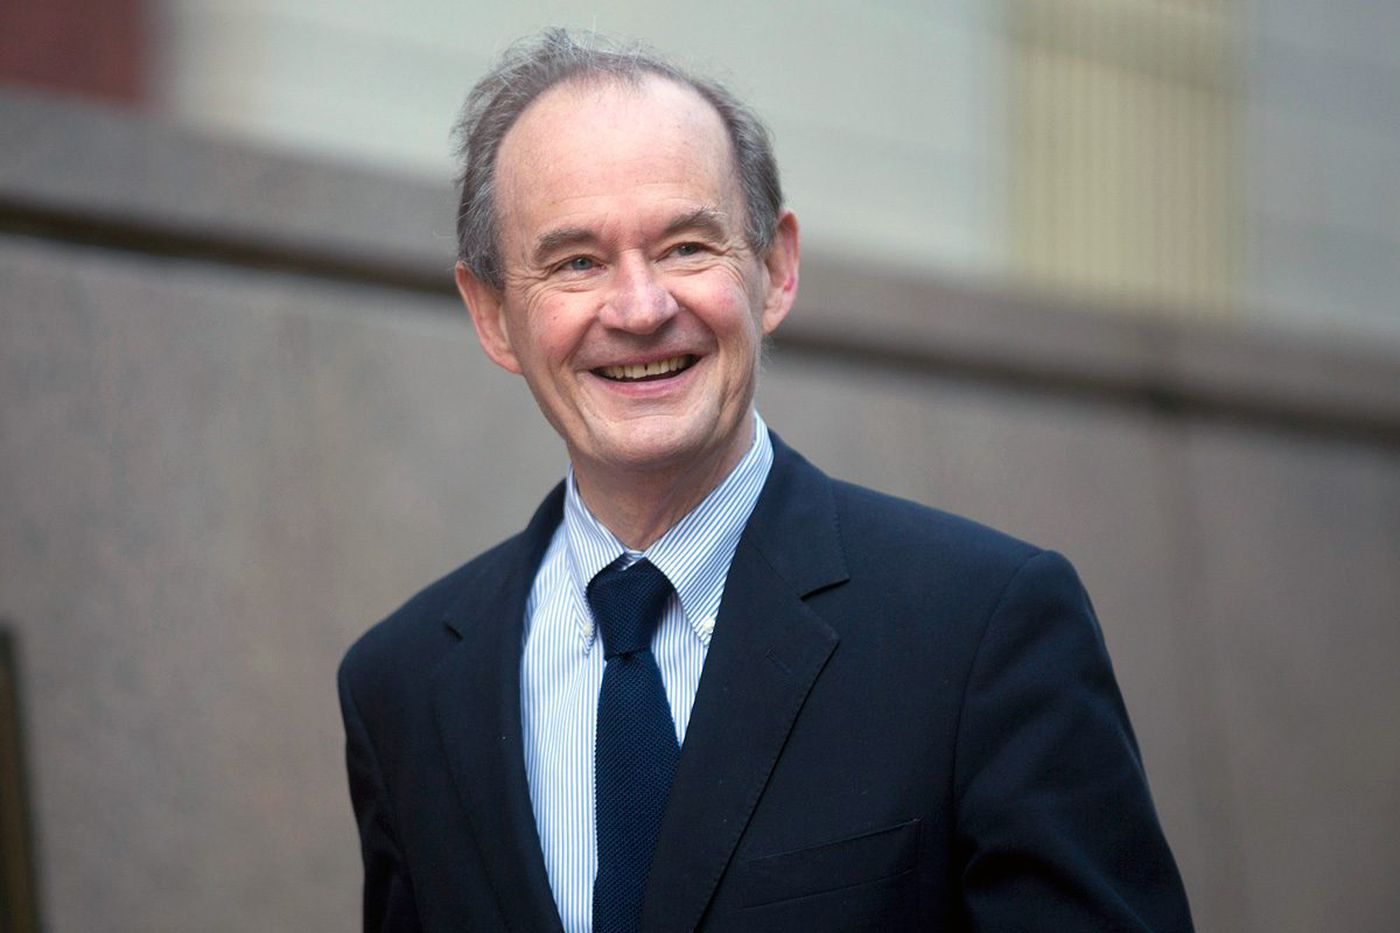 Harvey Weinstein scandal raises questions about tactics used by lawyer David Boies